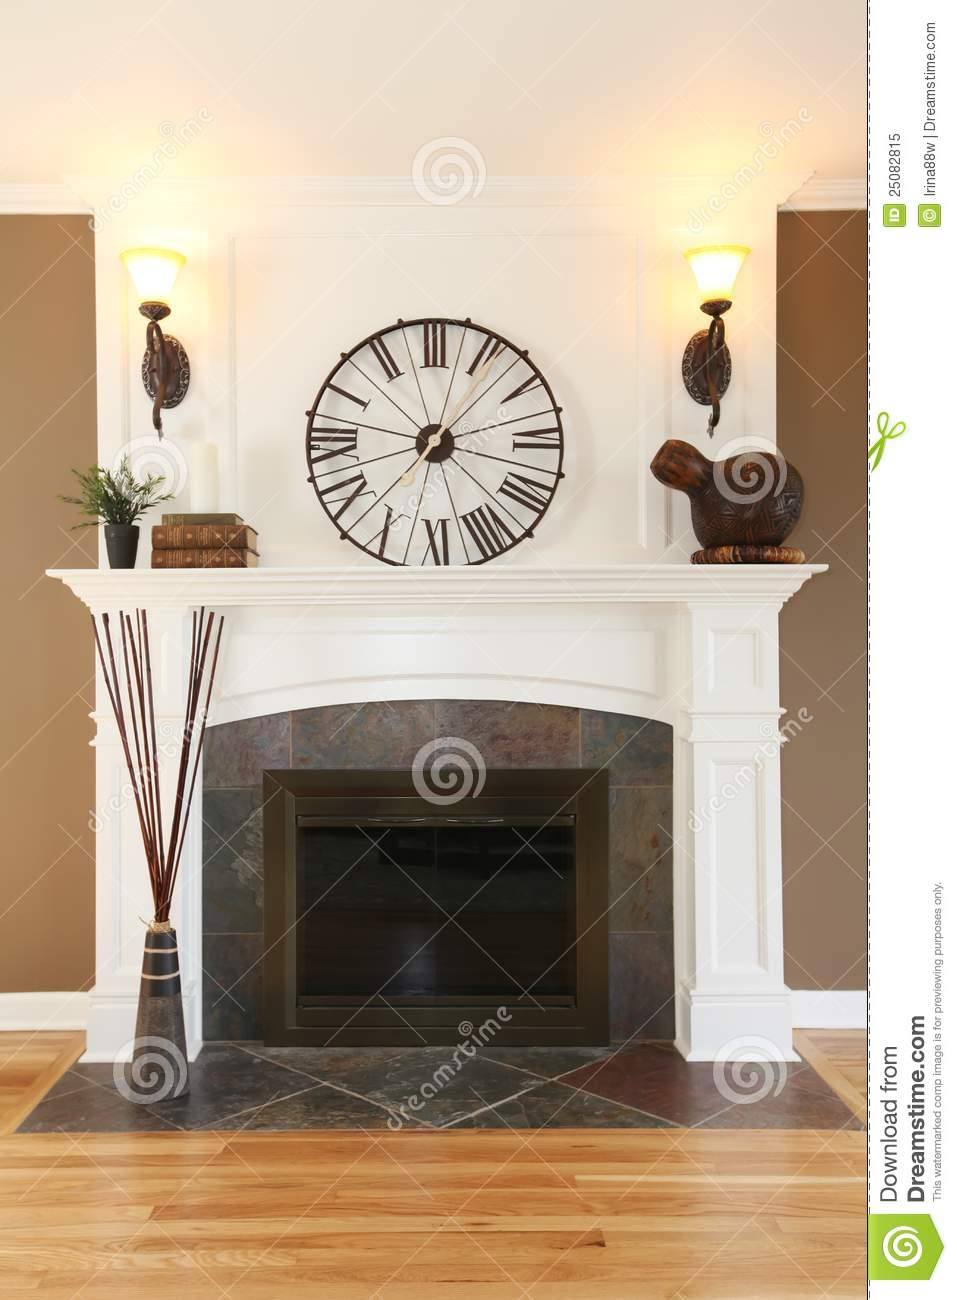 Luxury home white fireplace with stone and clock stock - Chimeneas de ladrillo ...